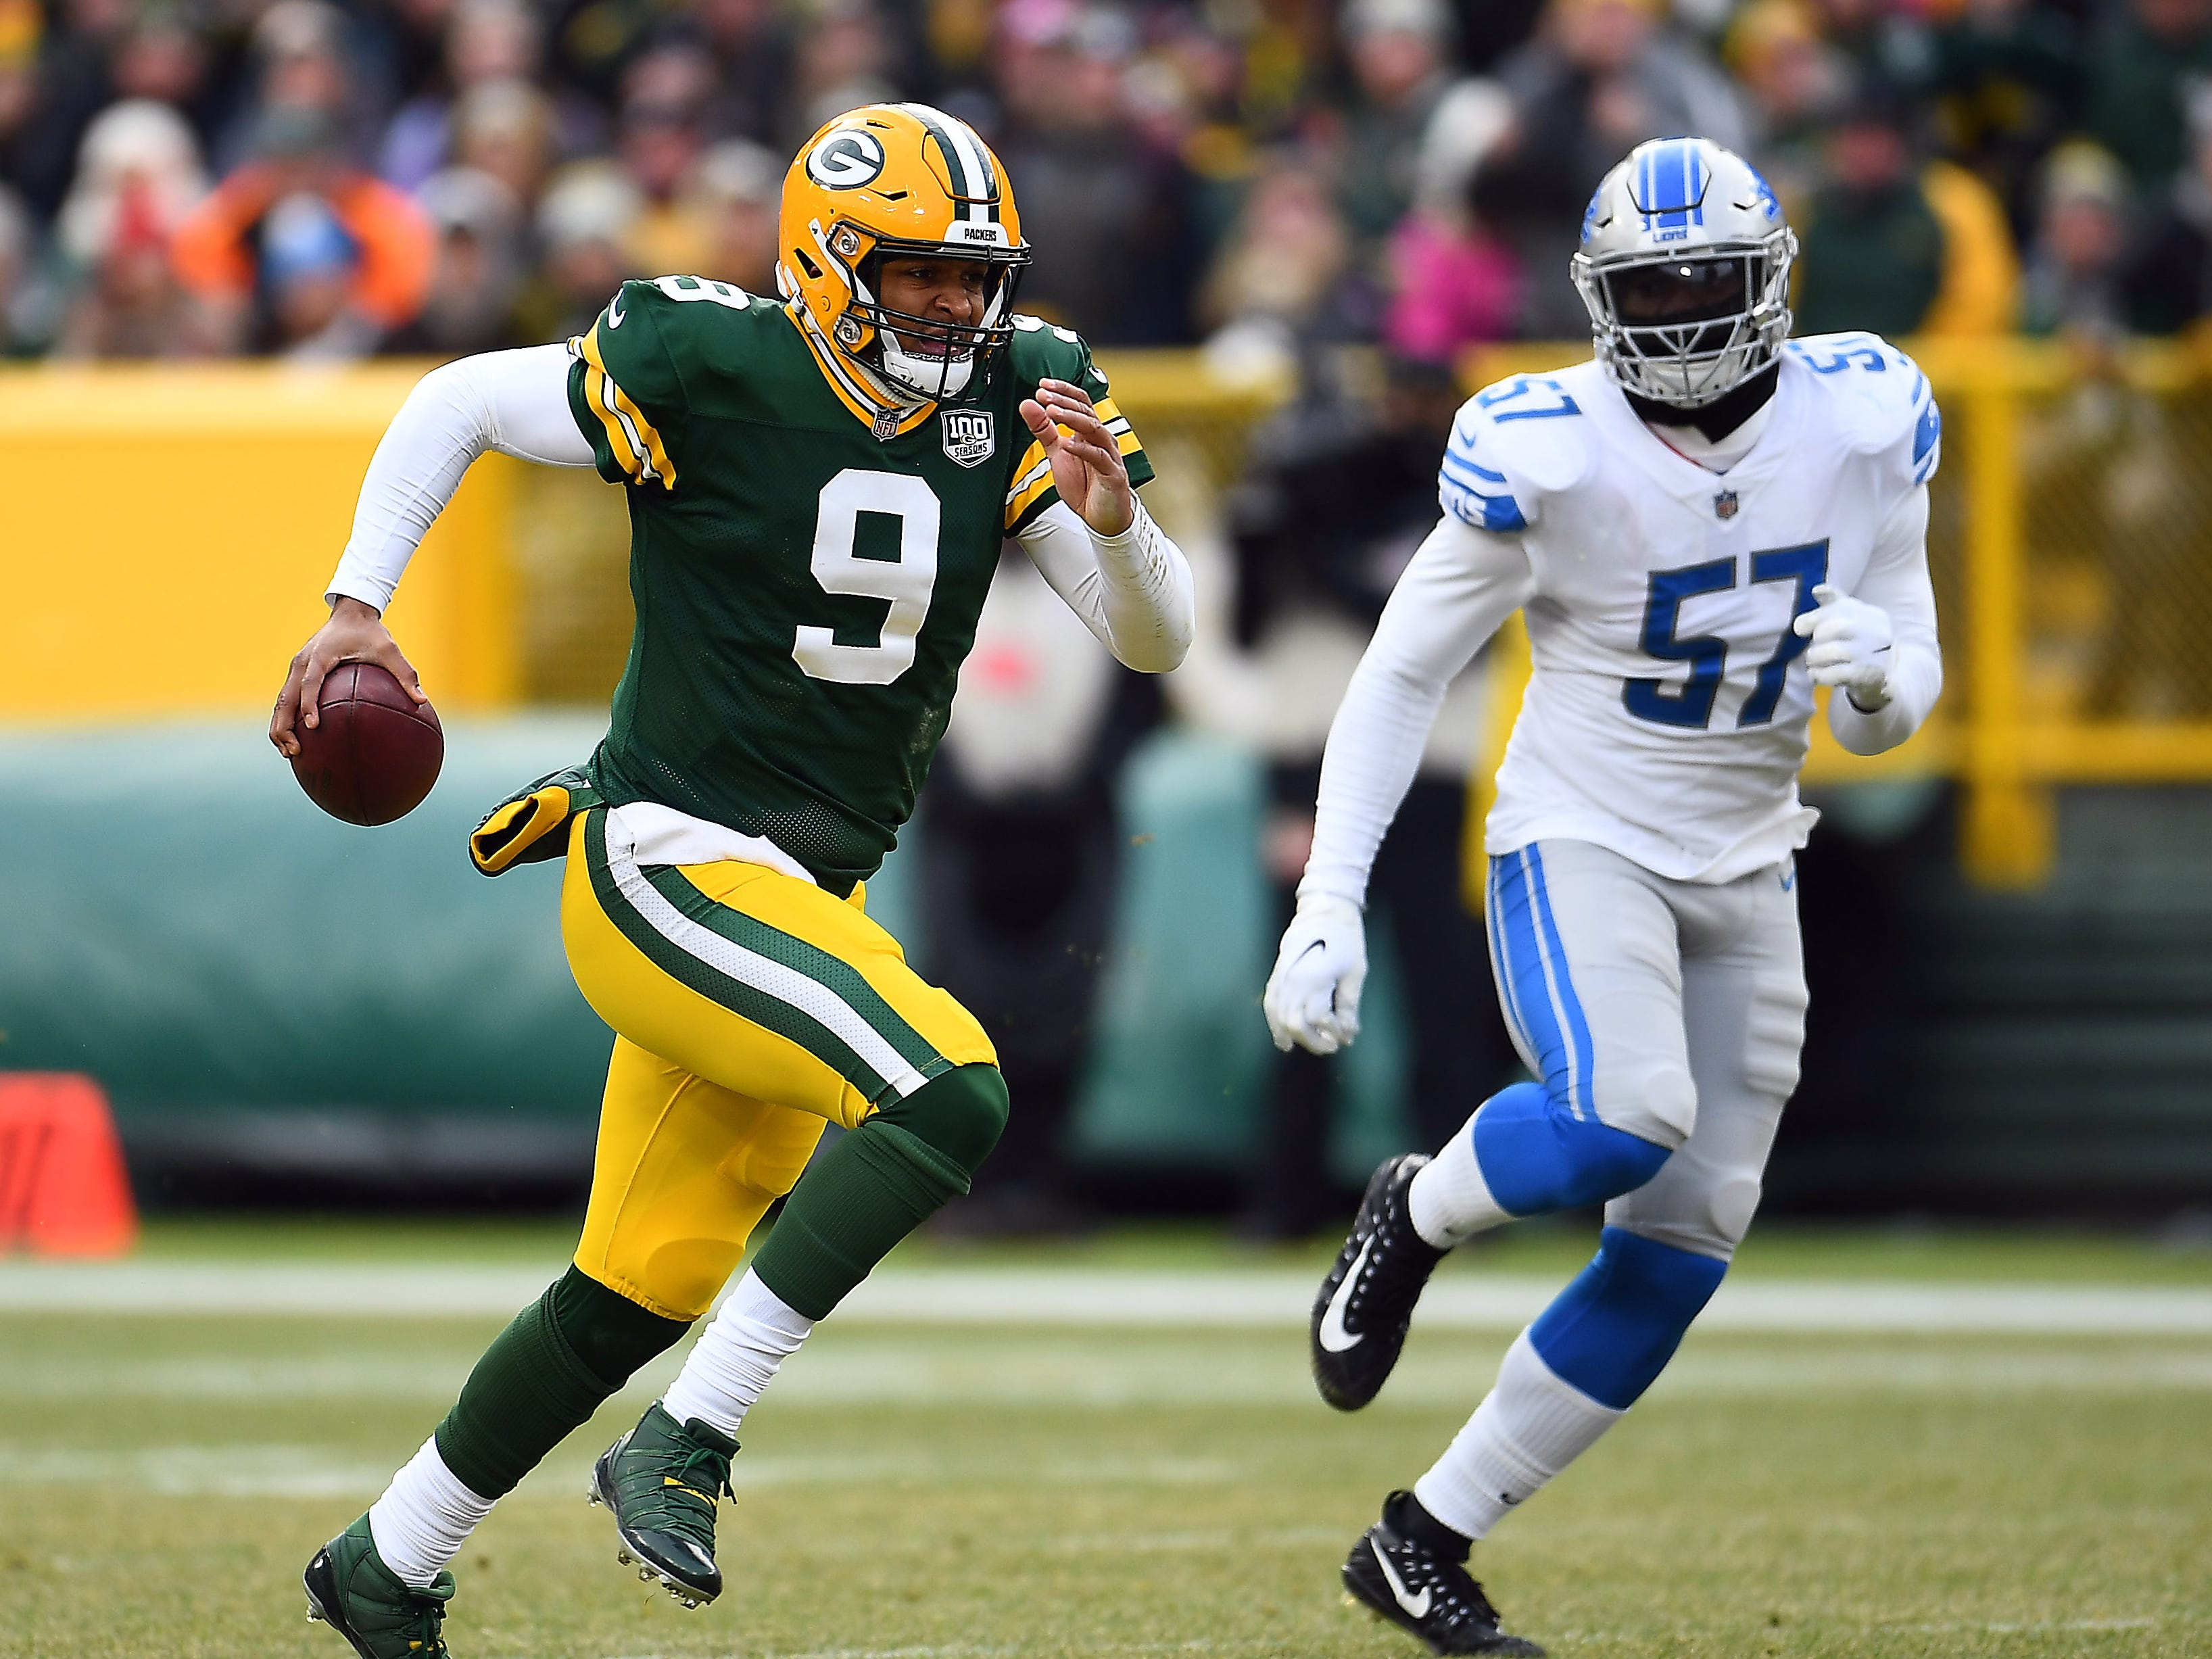 Packers quarterback DeShone Kizer runs in front of Lions linebacker Eli Harold during the second half of the Lions' 31-0 win on Sunday, Dec. 30, 2018, in Green Bay, Wis.